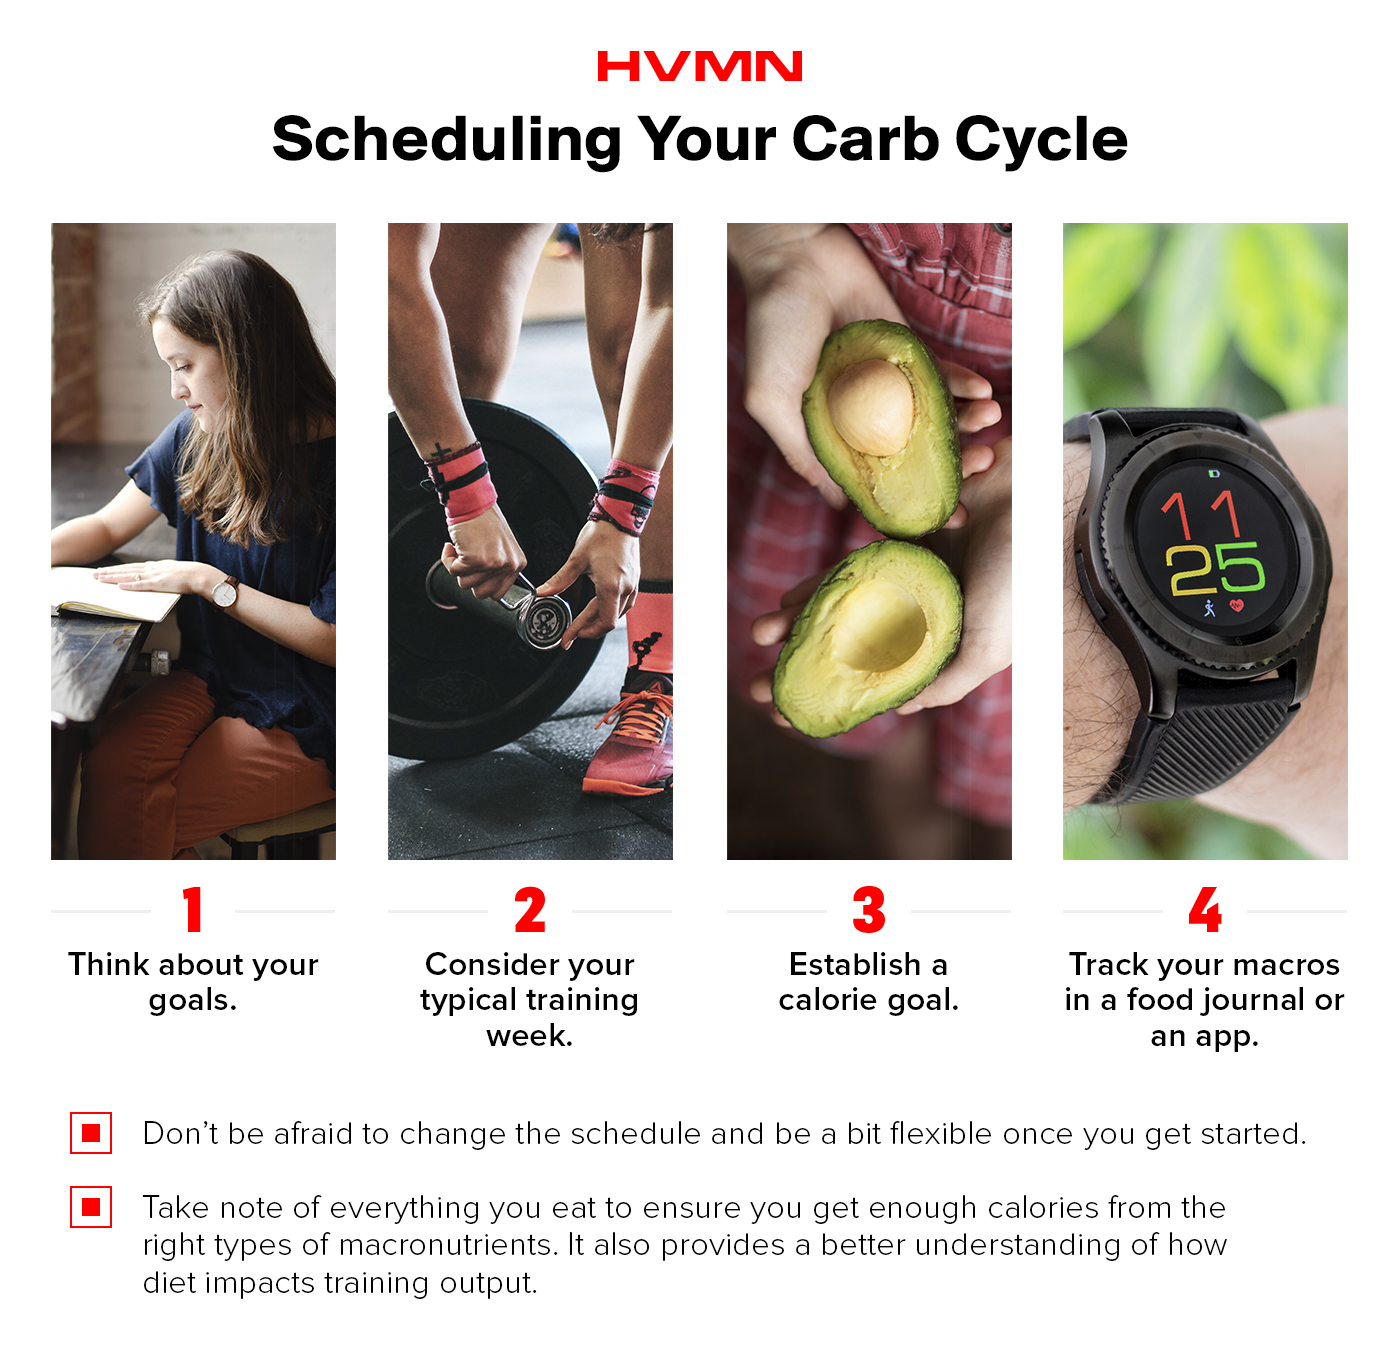 A guide to scheduling carb cycles, with a woman studying, a woman lifting weights, an avocado and a fitness watch